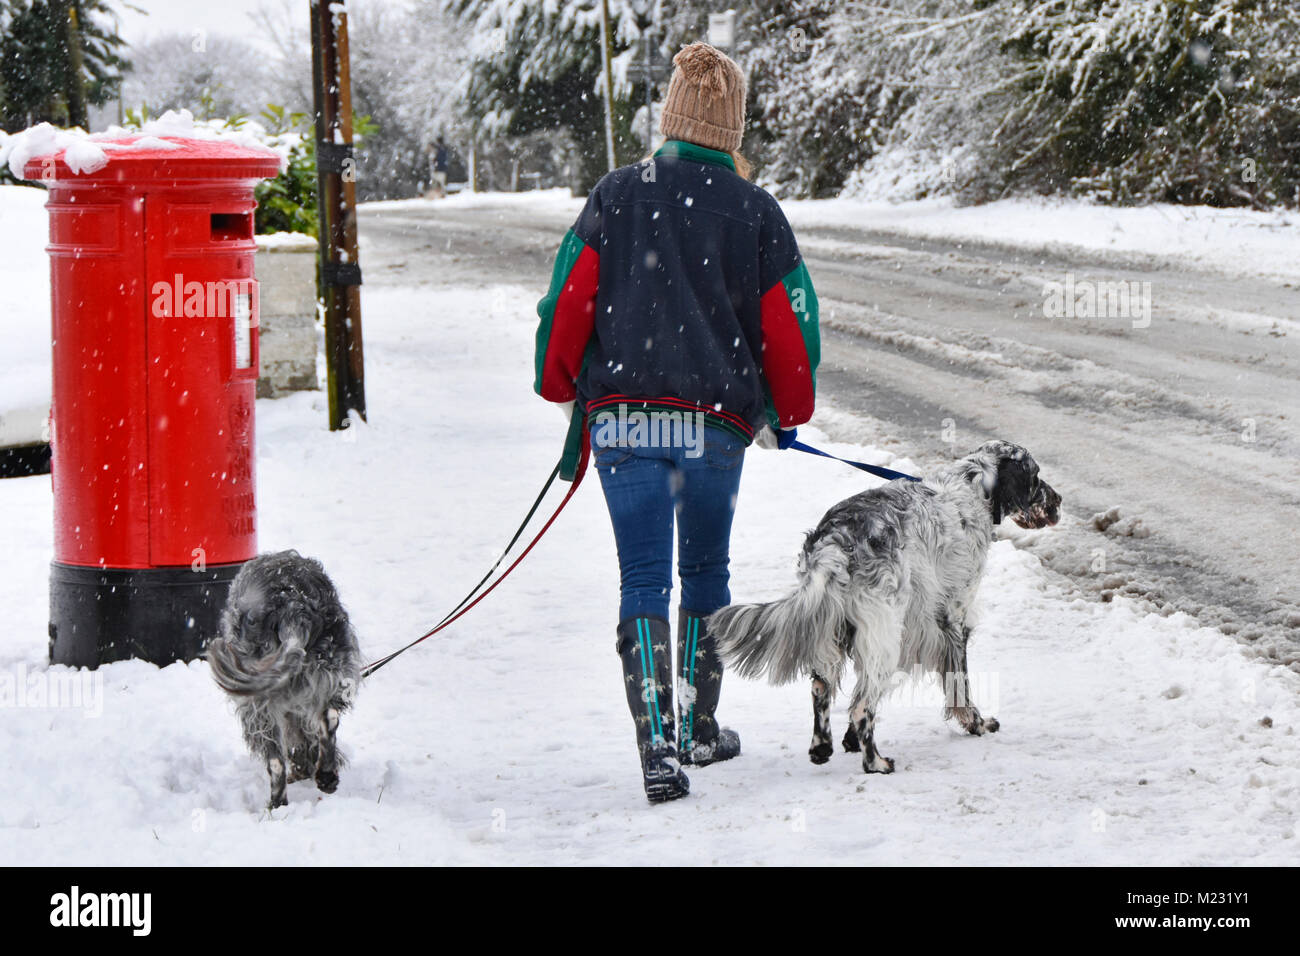 Snowing as woman walks with two English Setters dogs on dog leash walking along pavement snow falling and settling - Stock Image